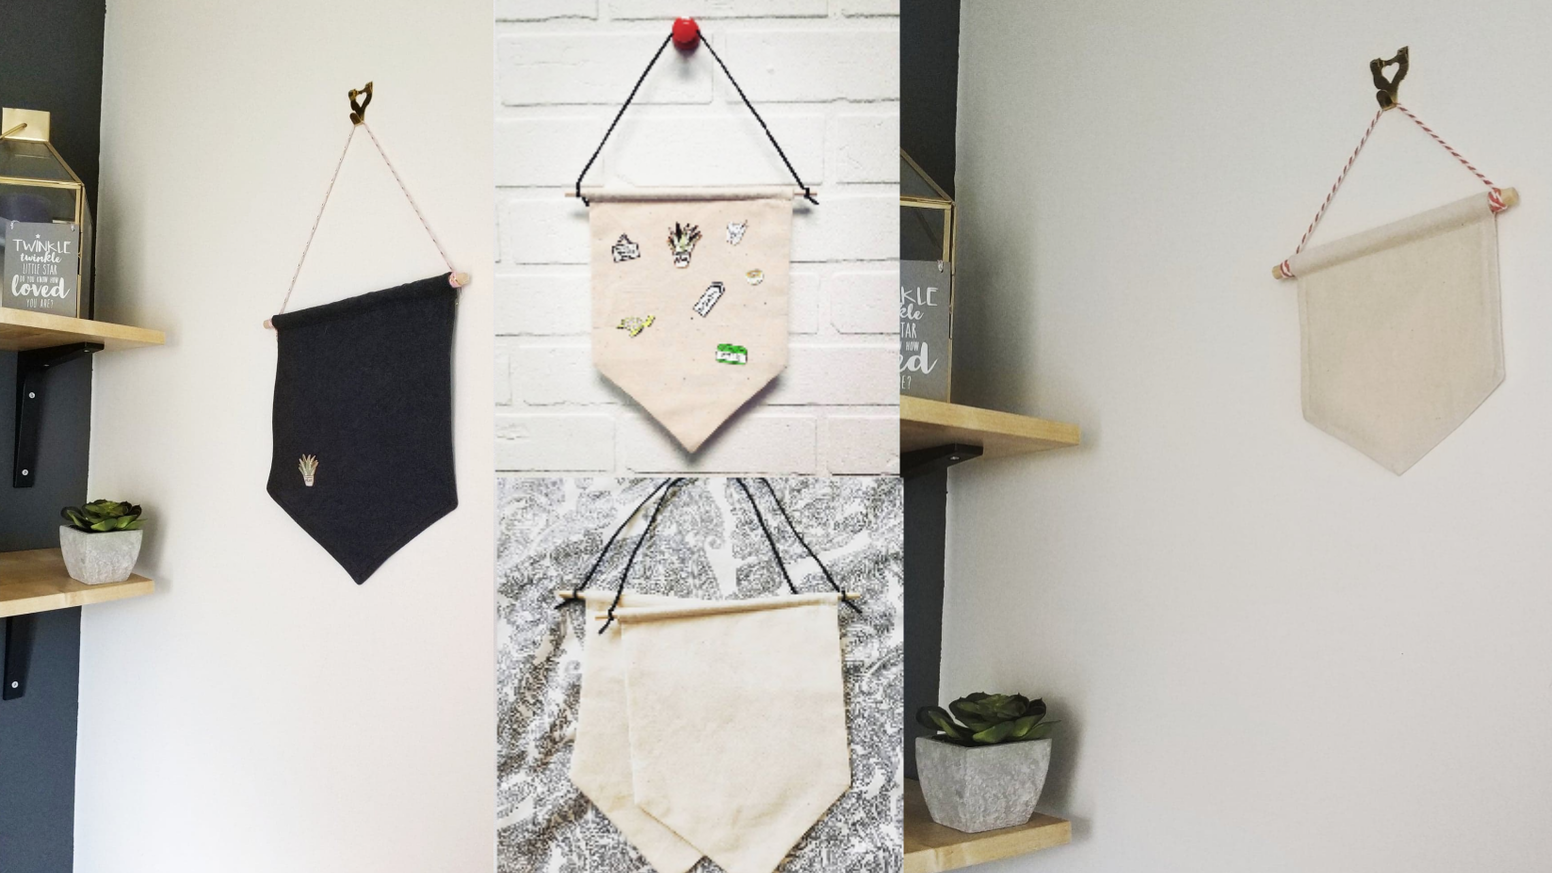 Enamel pin storage display banner pennant flag and bag by